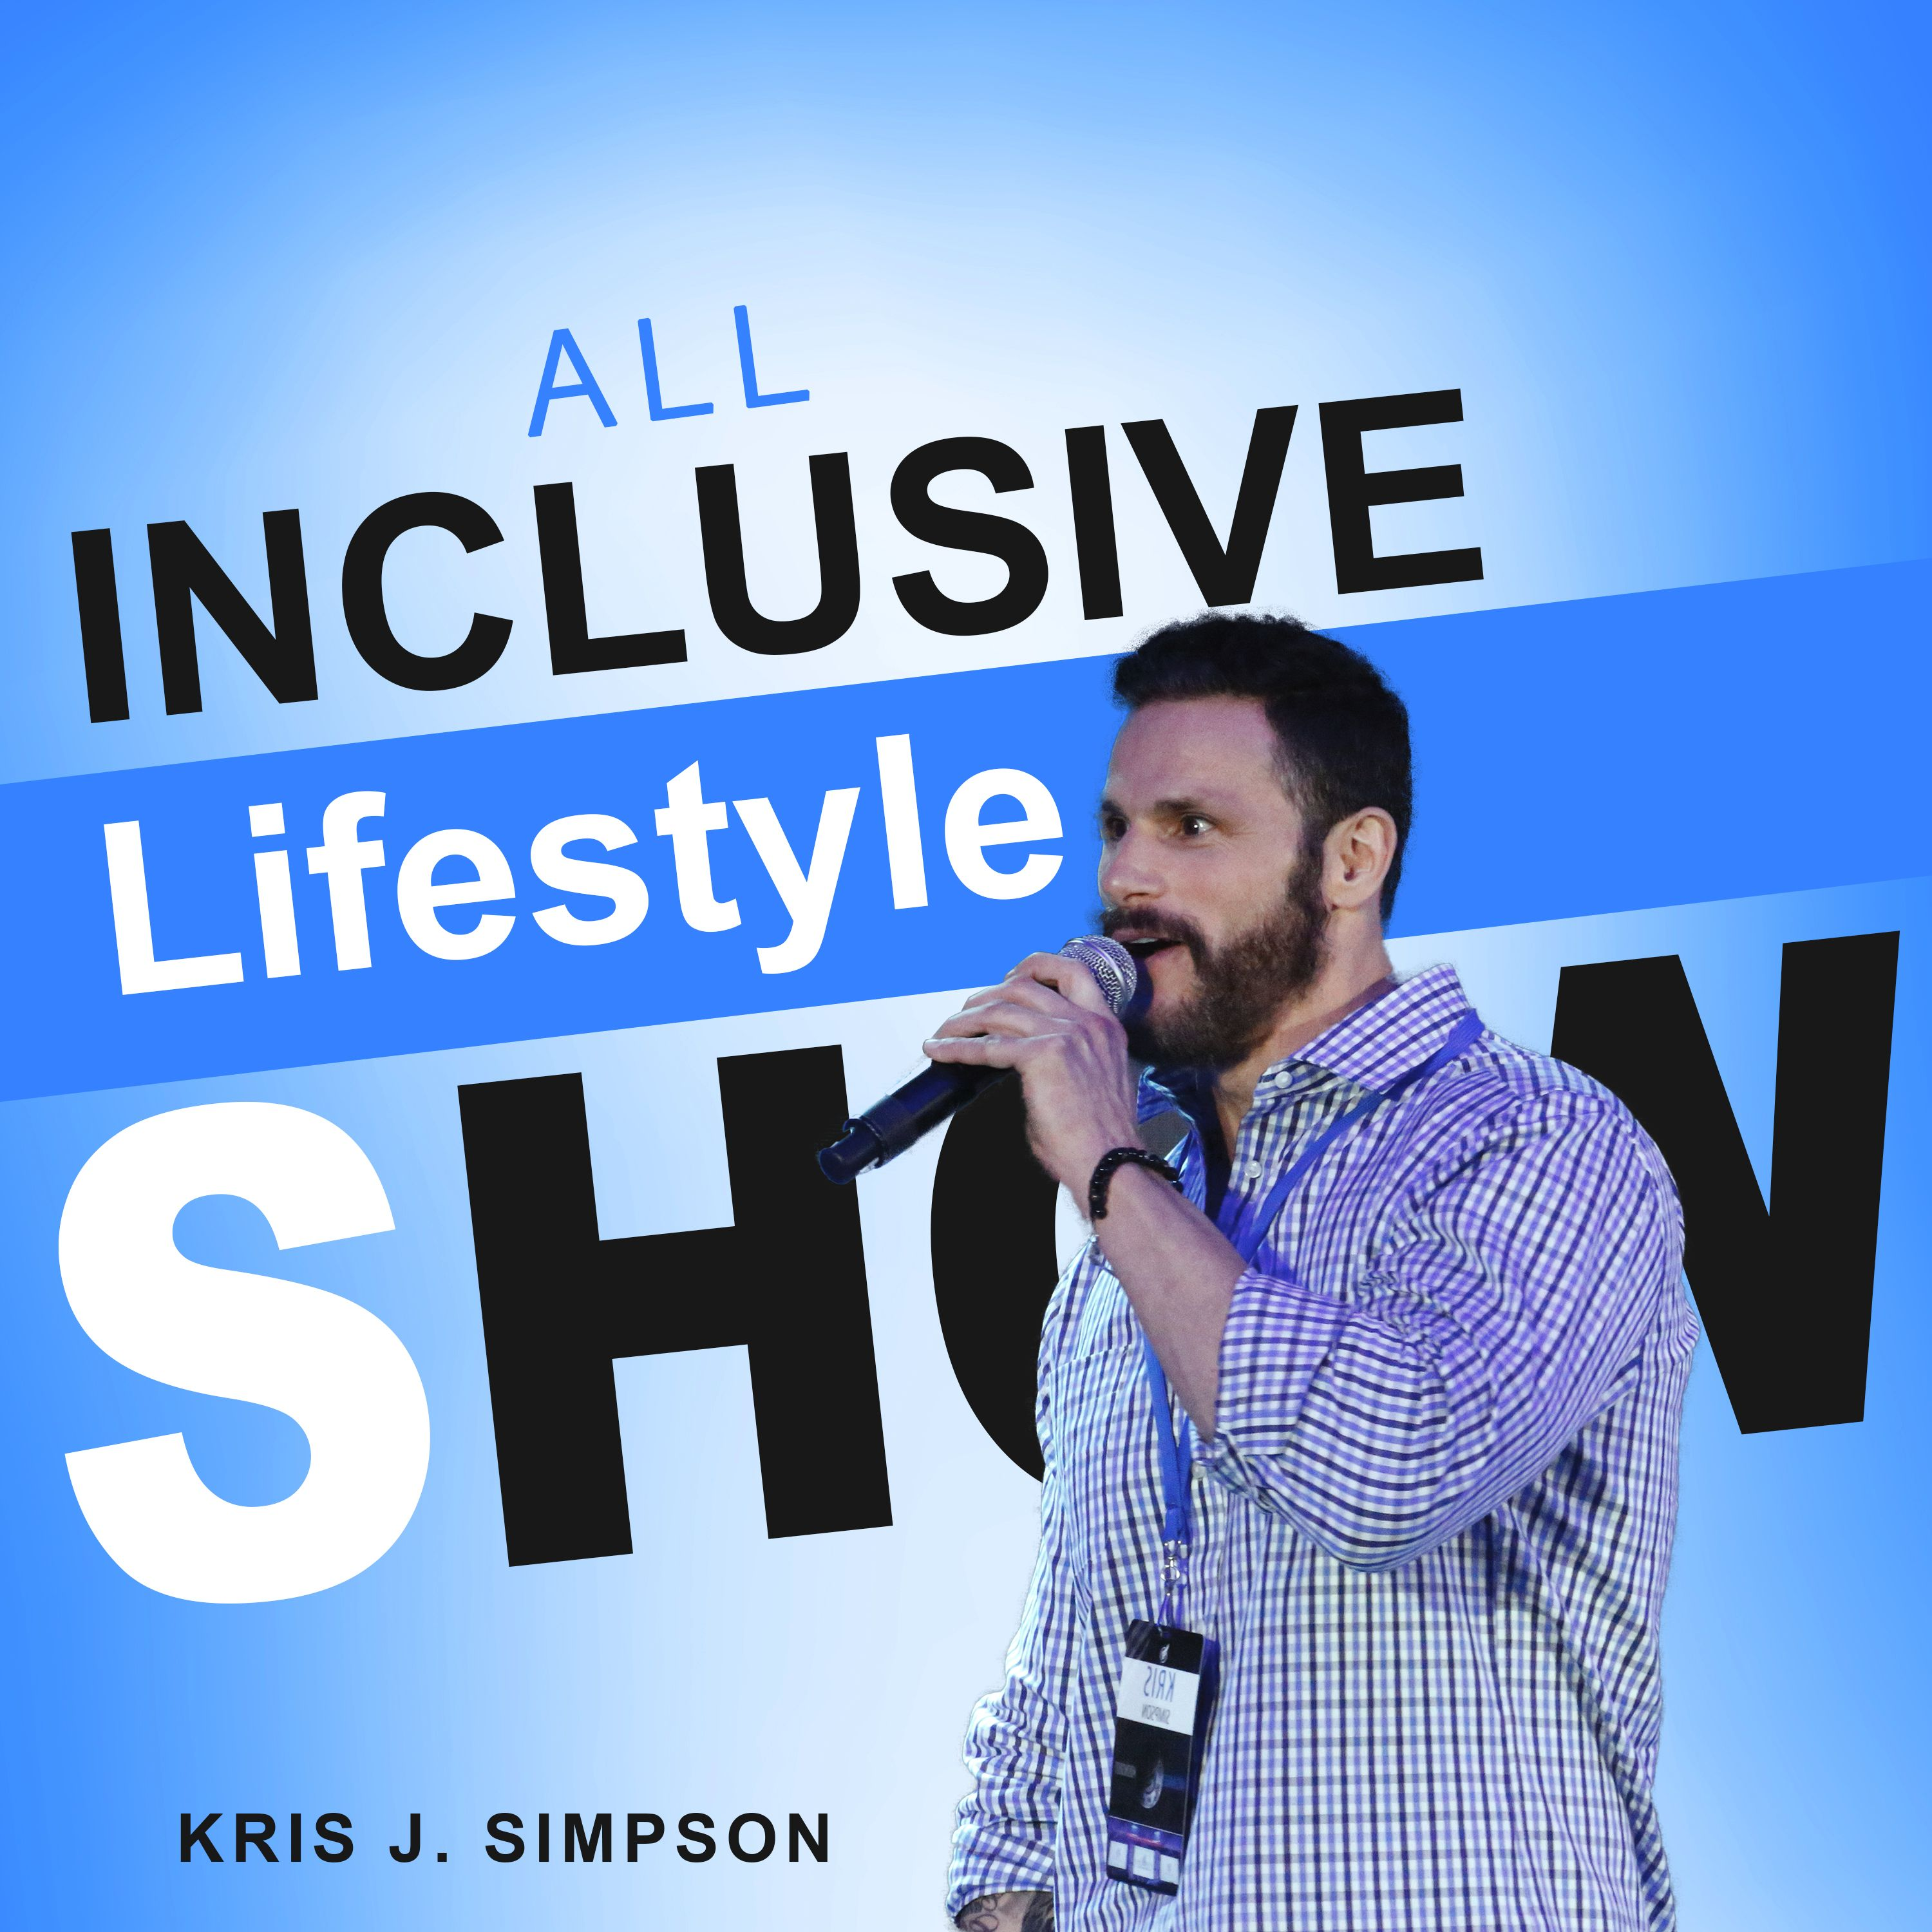 The All Inclusive Lifestyle Show with Kris J. Simpson show art